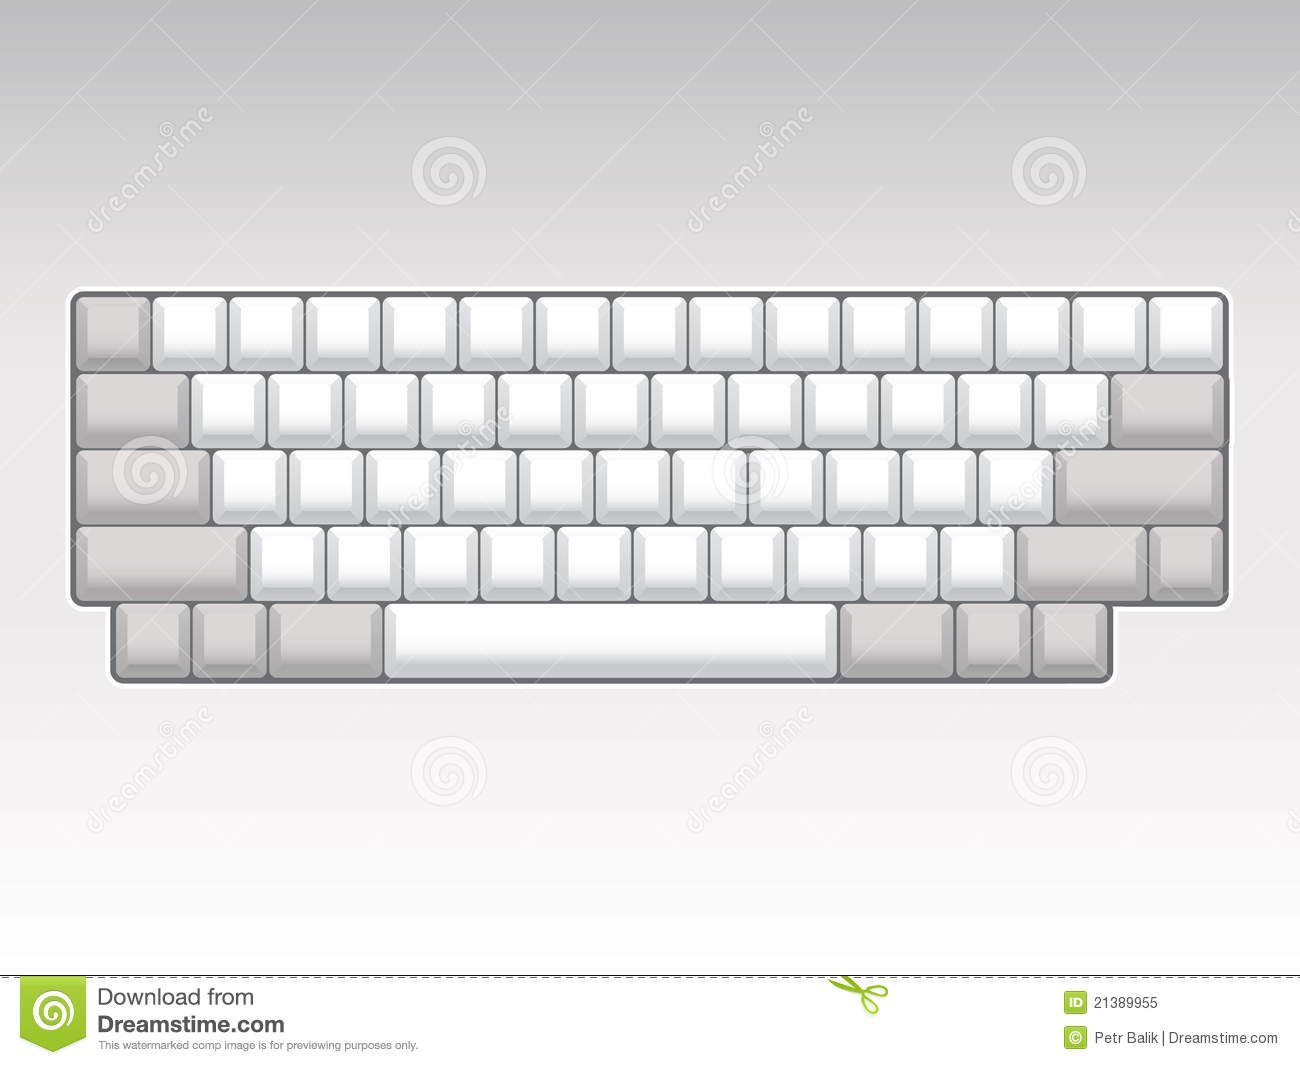 Keyboard Layout Royalty Free Stock Photo